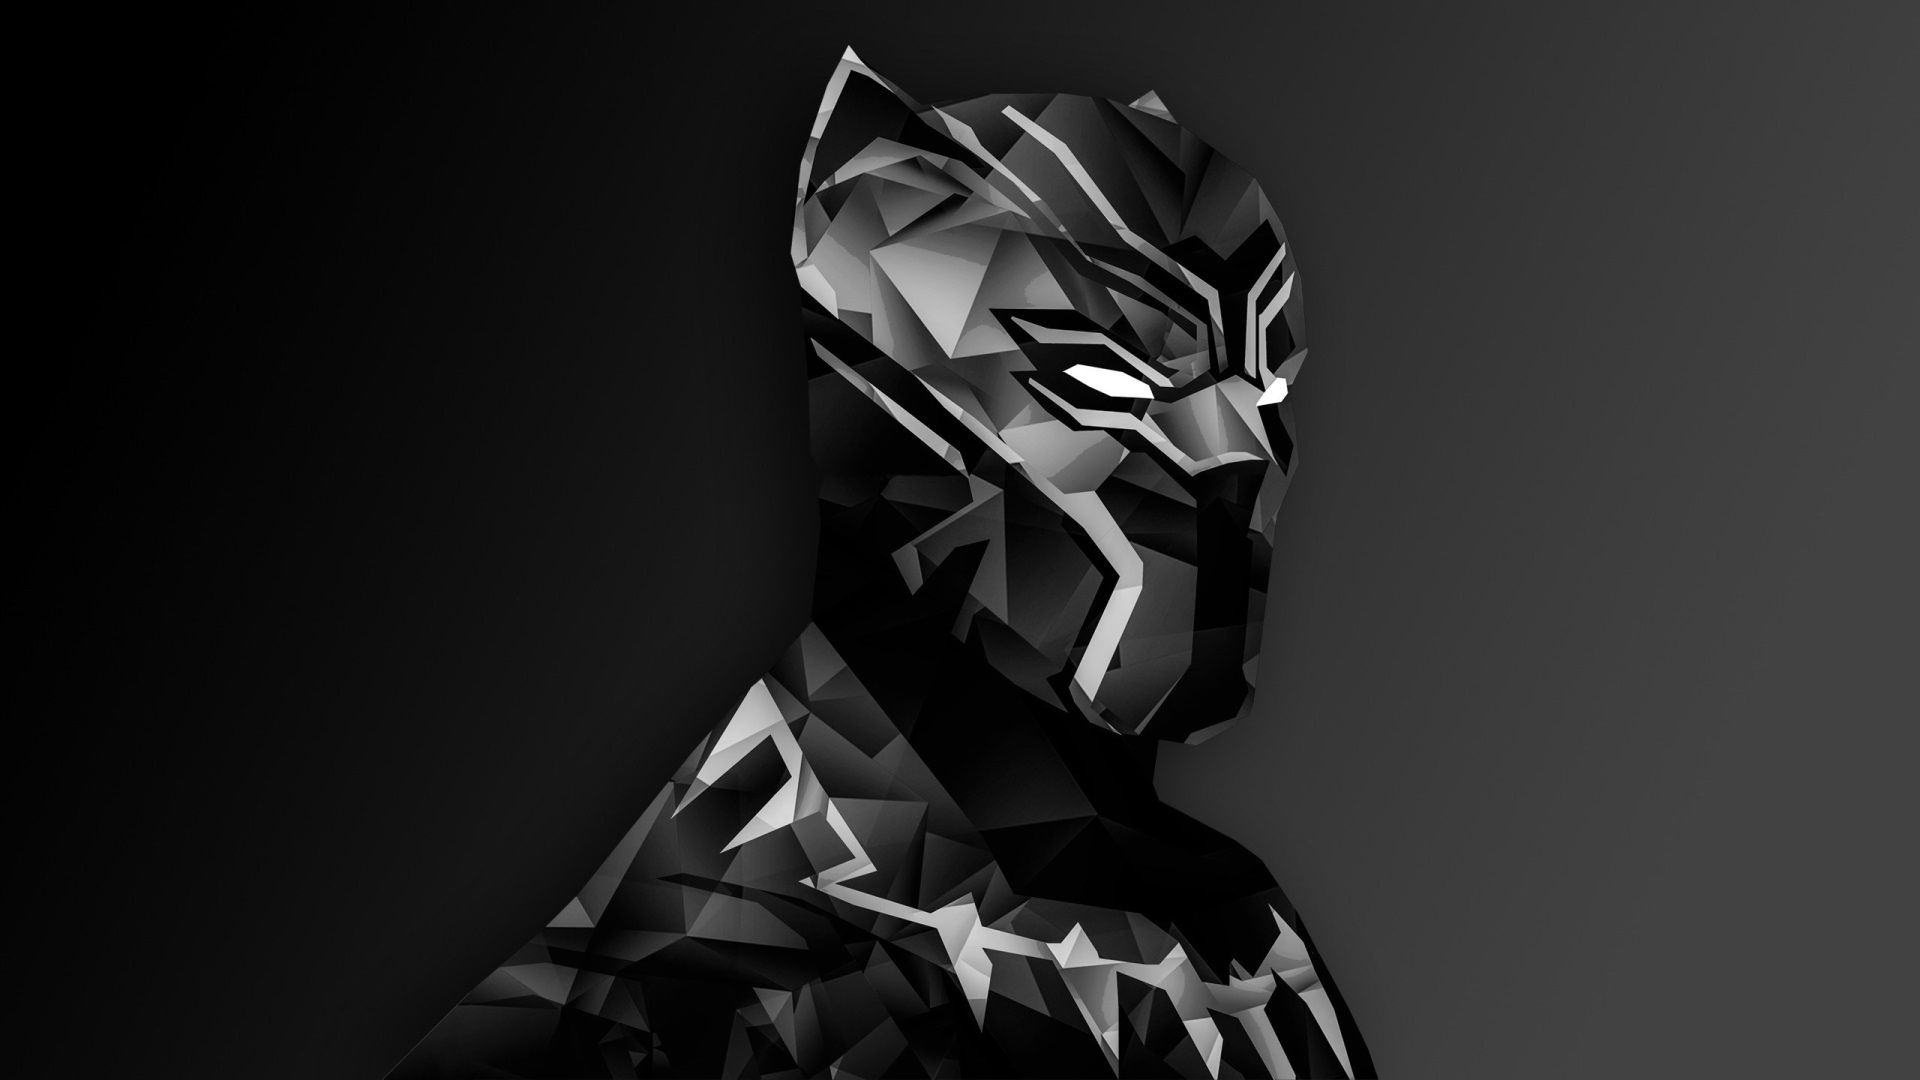 1920x1080 black panther hd background image wallpapers and